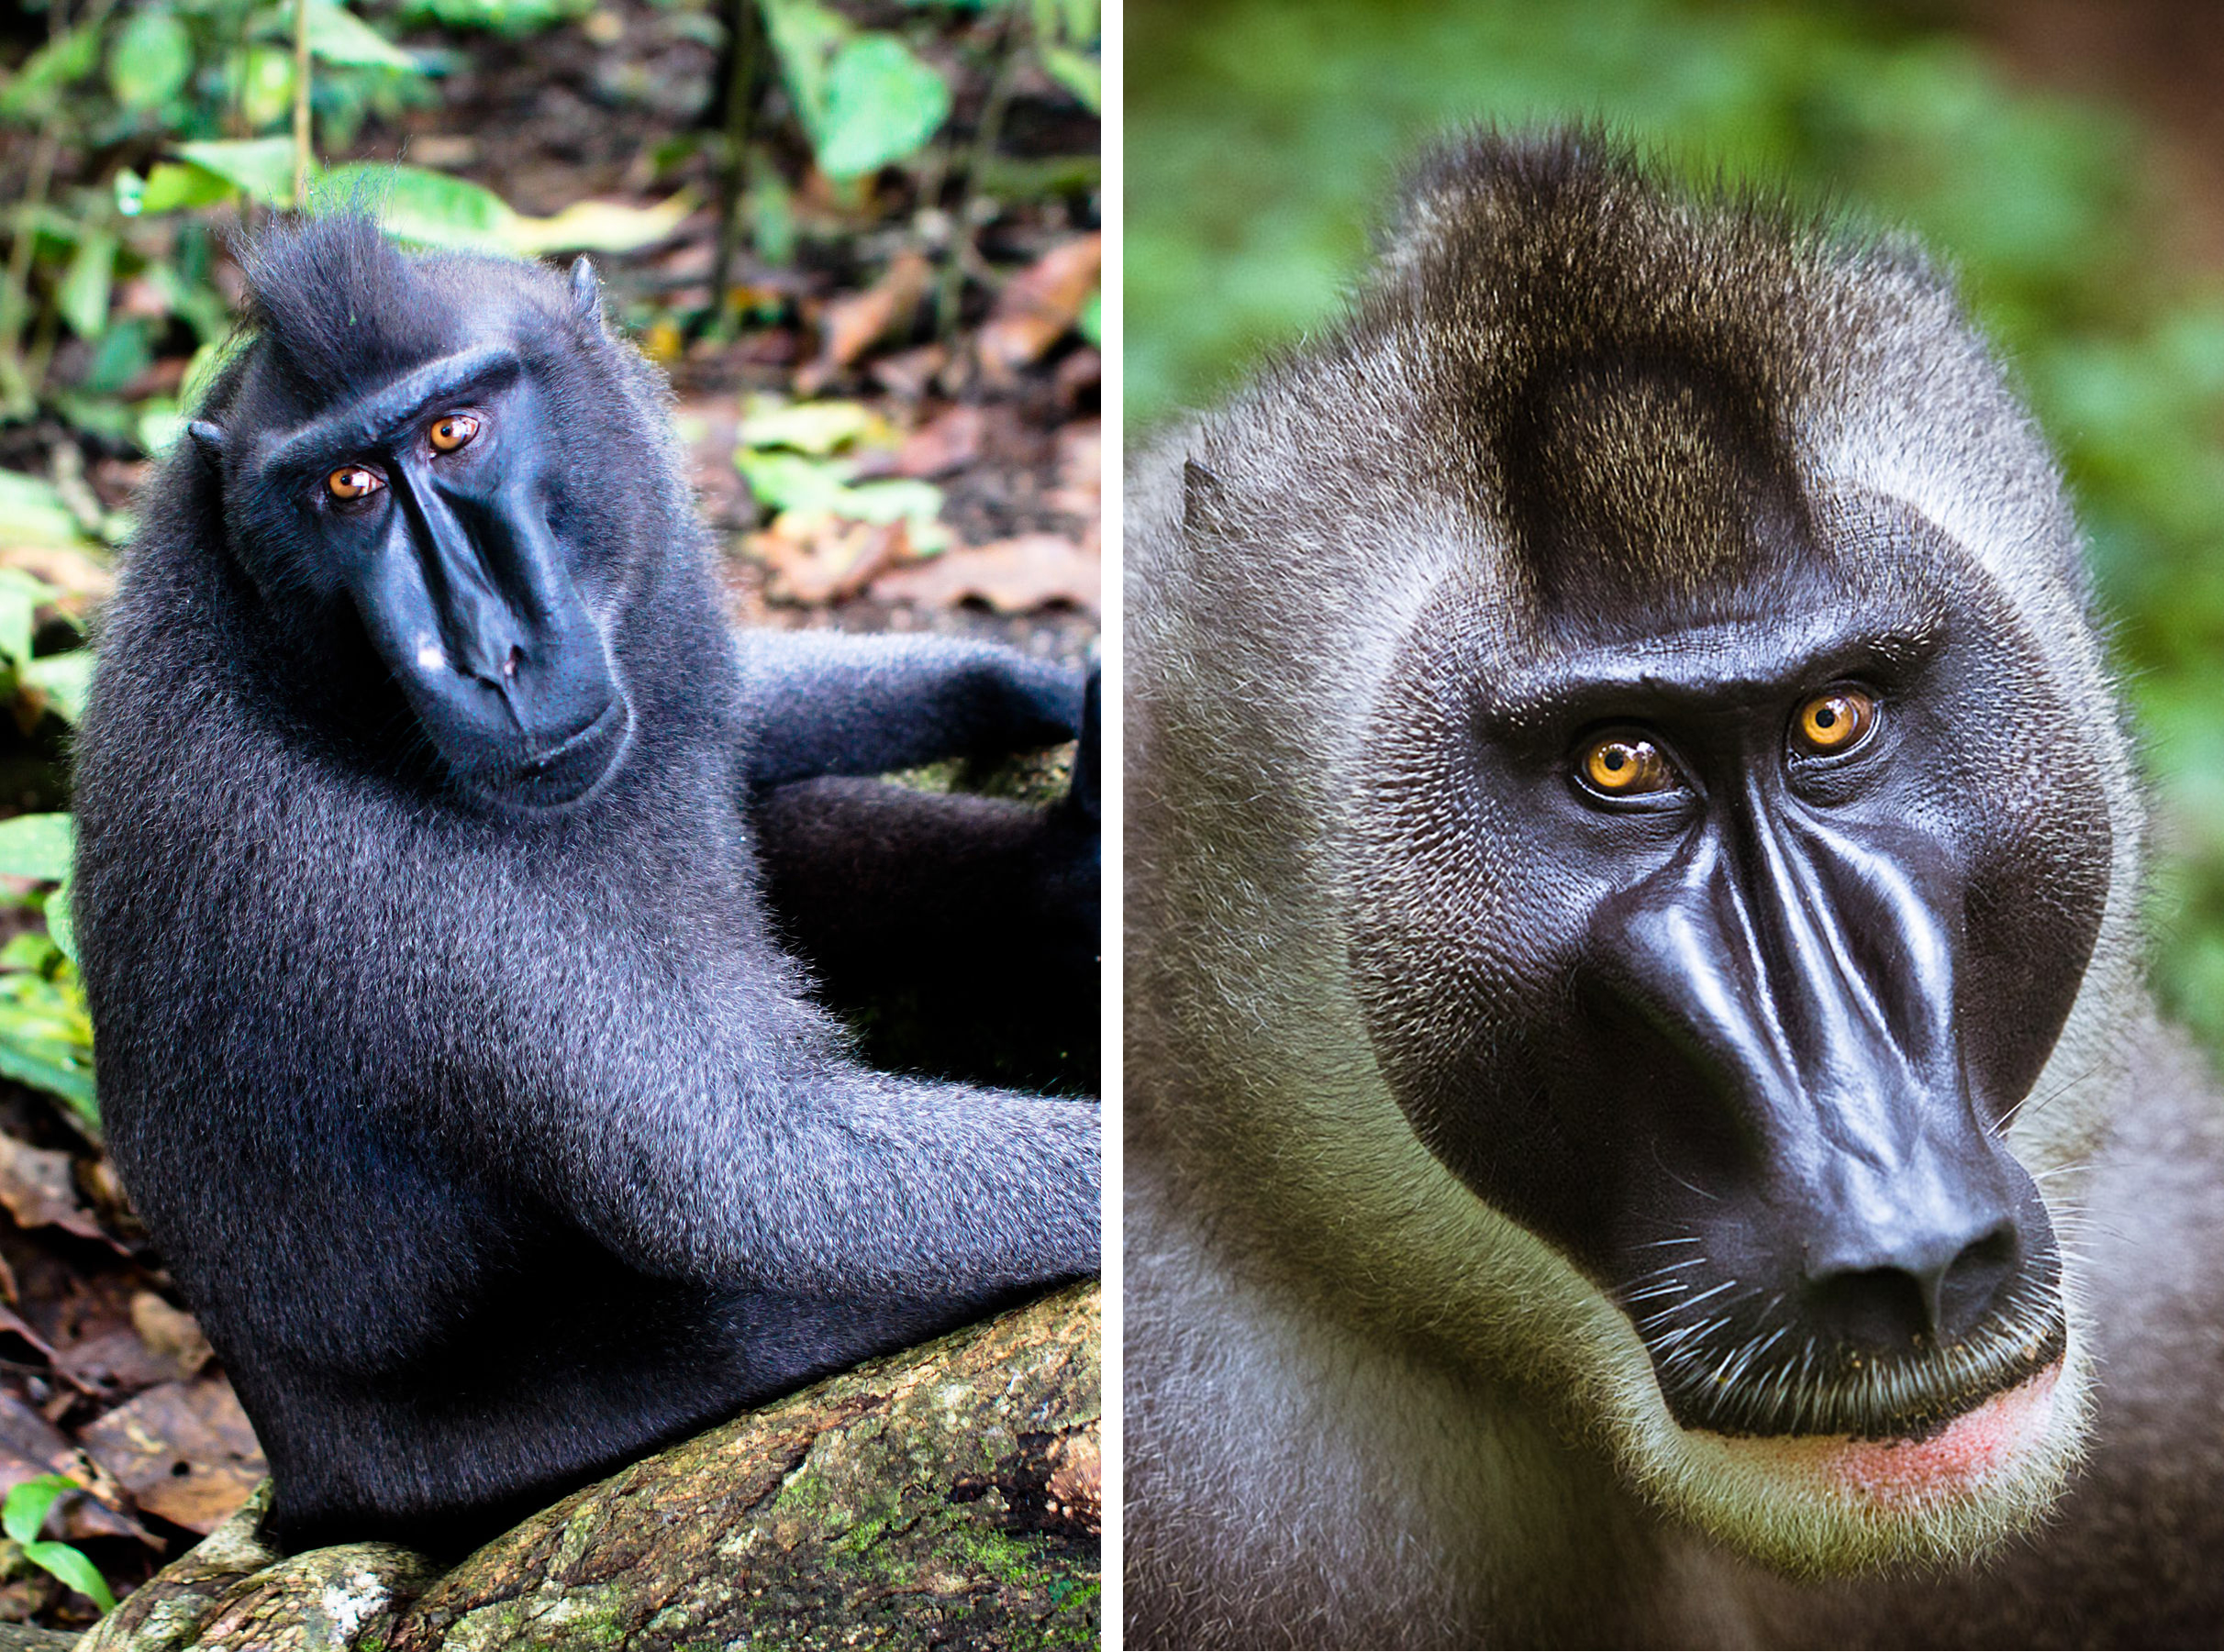 "Convergences in craniofacial shape between a Sulawesi crested macaque and a drill.  (Left image by Yi Chen vis Wikimedia Commons [https://commons.wikimedia.org/wiki/File%3ASulawesi_crested_macaque.jpg]. Right image from                             Normal     0                     false     false     false         EN-US     JA     X-NONE                                                                                                                                                                                                                                                                                                                                                                                                                                                                                                                                                                                                                                                                                                                                                                                                                                                                                                                                                                                                                                                                                                                                                                                                                                                                                                                                                                                                                                                                                                                                                                                                                                                                                                                                 /* Style Definitions */ table.MsoNormalTable 	{mso-style-name:""Table Normal""; 	mso-tstyle-rowband-size:0; 	mso-tstyle-colband-size:0; 	mso-style-noshow:yes; 	mso-style-priority:99; 	mso-style-parent:""""; 	mso-padding-alt:0in 5.4pt 0in 5.4pt; 	mso-para-margin-top:0in; 	mso-para-margin-right:0in; 	mso-para-margin-bottom:8.0pt; 	mso-para-margin-left:0in; 	line-height:107%; 	mso-pagination:widow-orphan; 	font-size:11.0pt; 	font-family:""Calibri"",sans-serif; 	mso-ascii-font-family:Calibri; 	mso-ascii-theme-font:minor-latin; 	mso-hansi-font-family:Calibri; 	mso-hansi-theme-font:minor-latin;}     http://intotheworld.eu/itw/wp-content/uploads/2011/11/IMG_4383.jpg)"